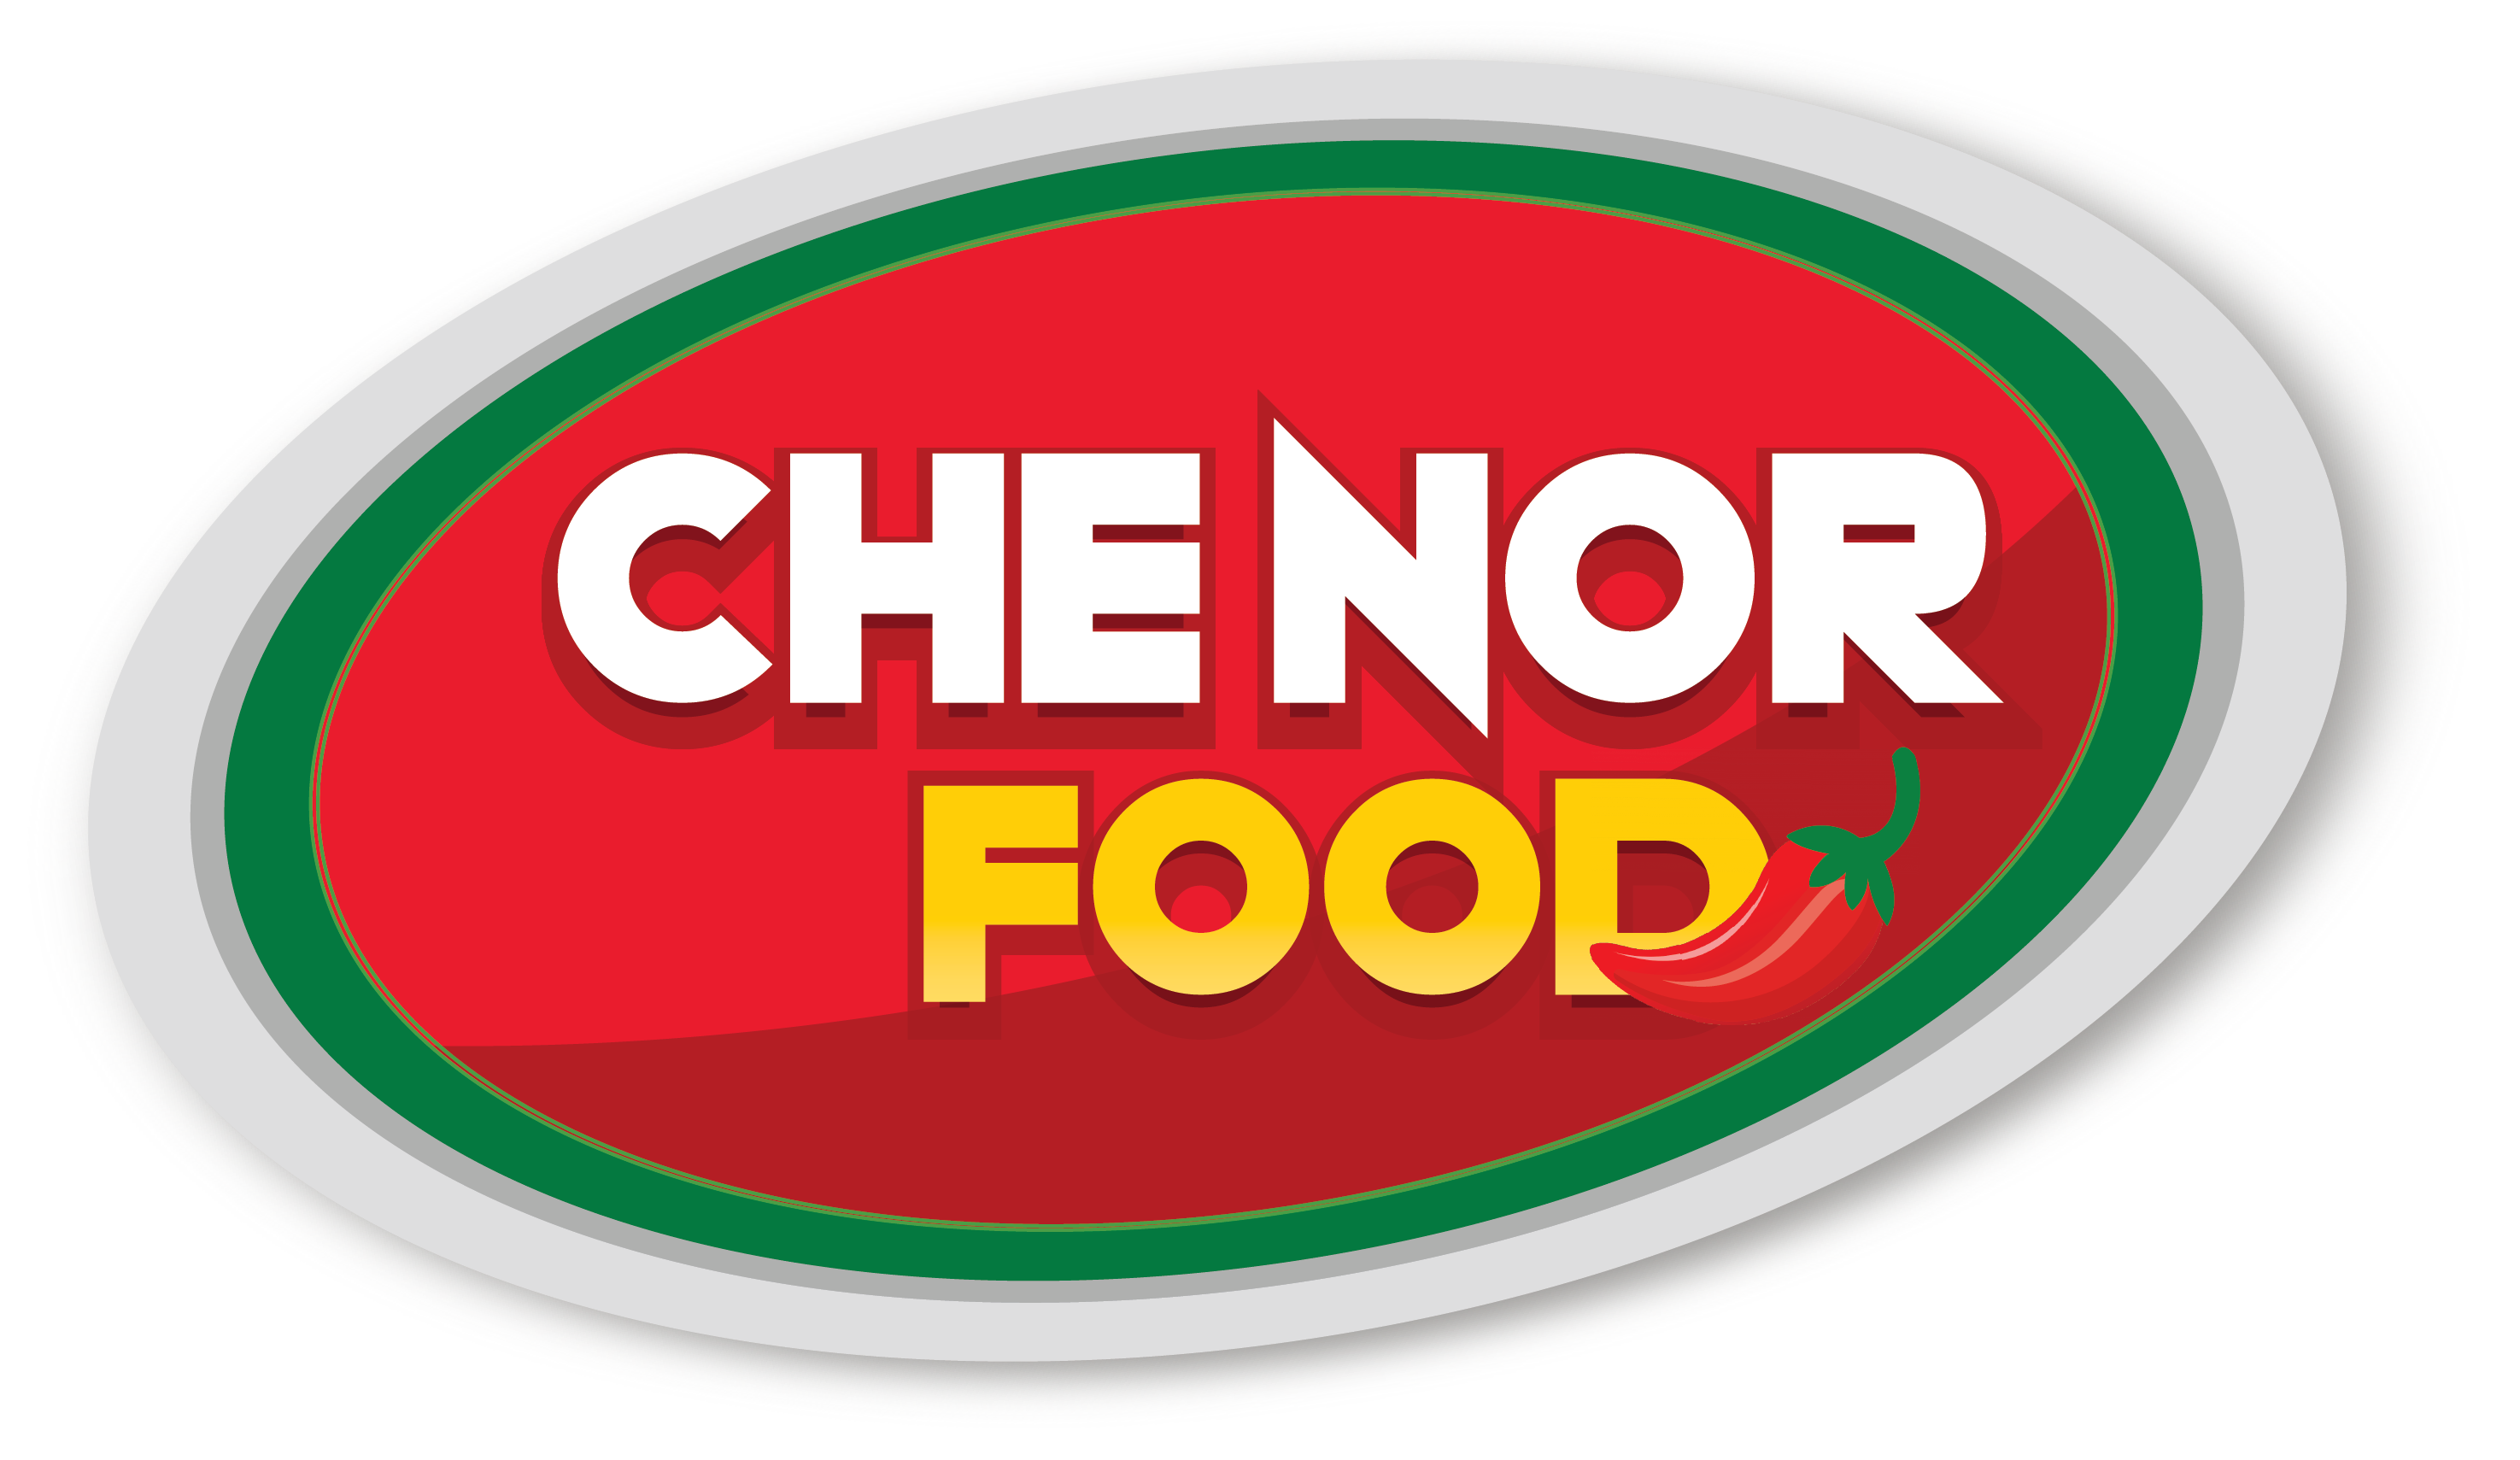 Che Nor Food